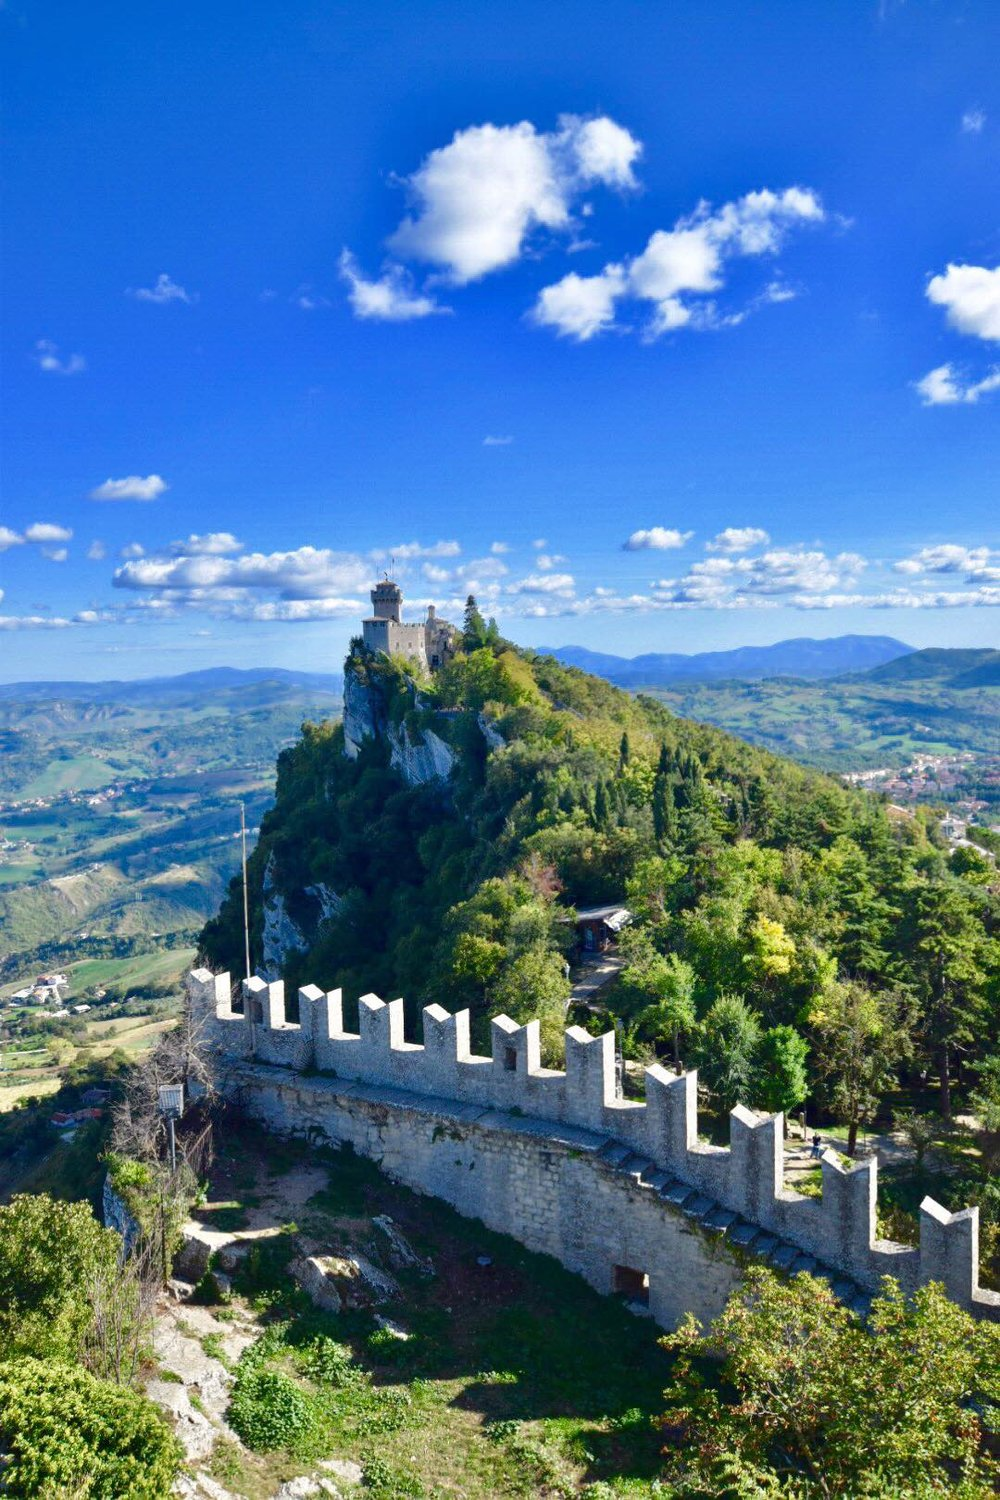 Kach Solo Travels Day 42: Hello from San Marino, my country 114! тЭдя╕П